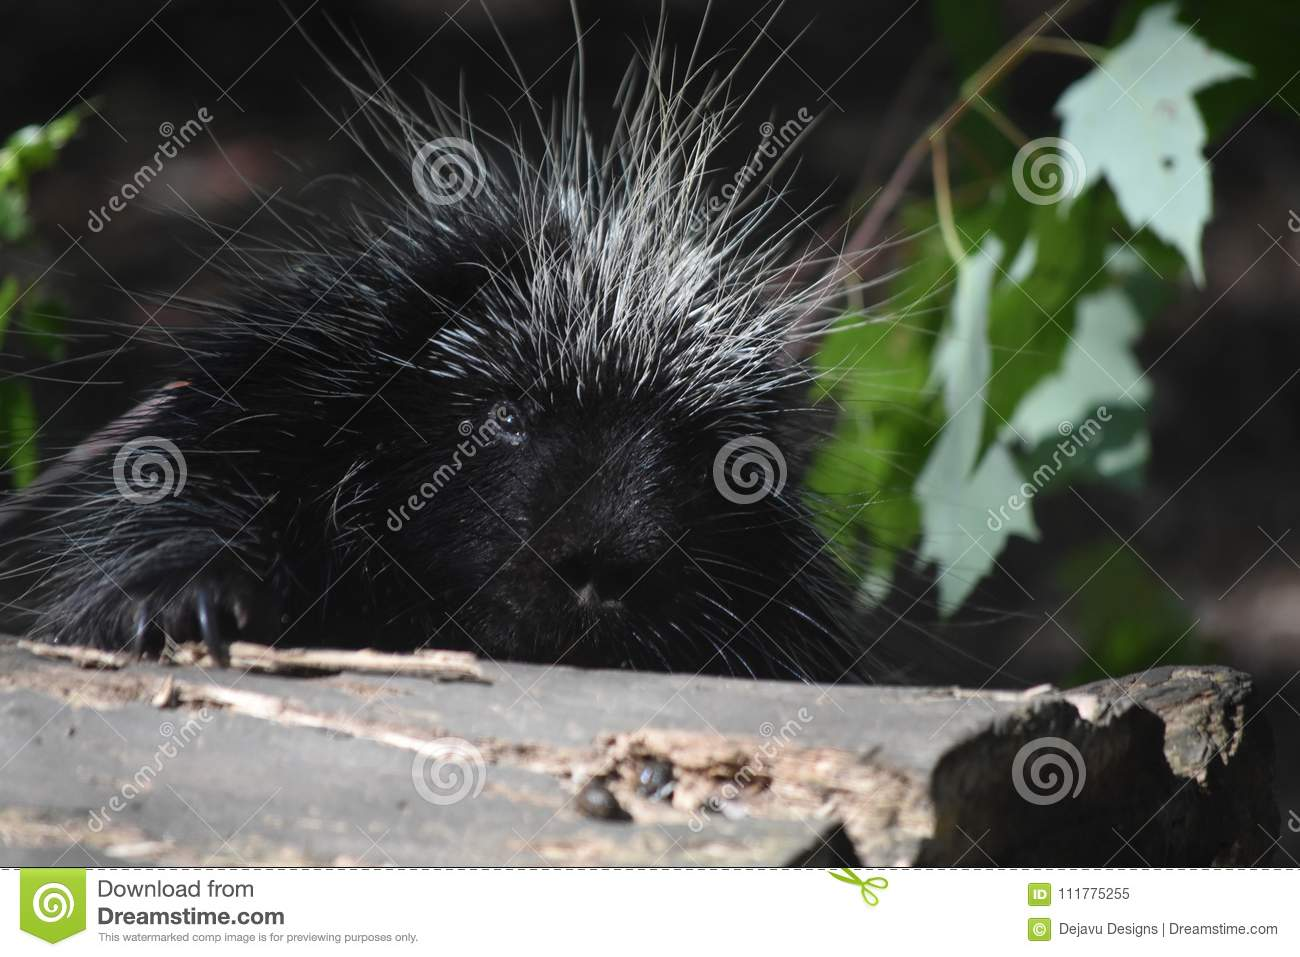 Close up on a wild porcupines face while its climbing over a log